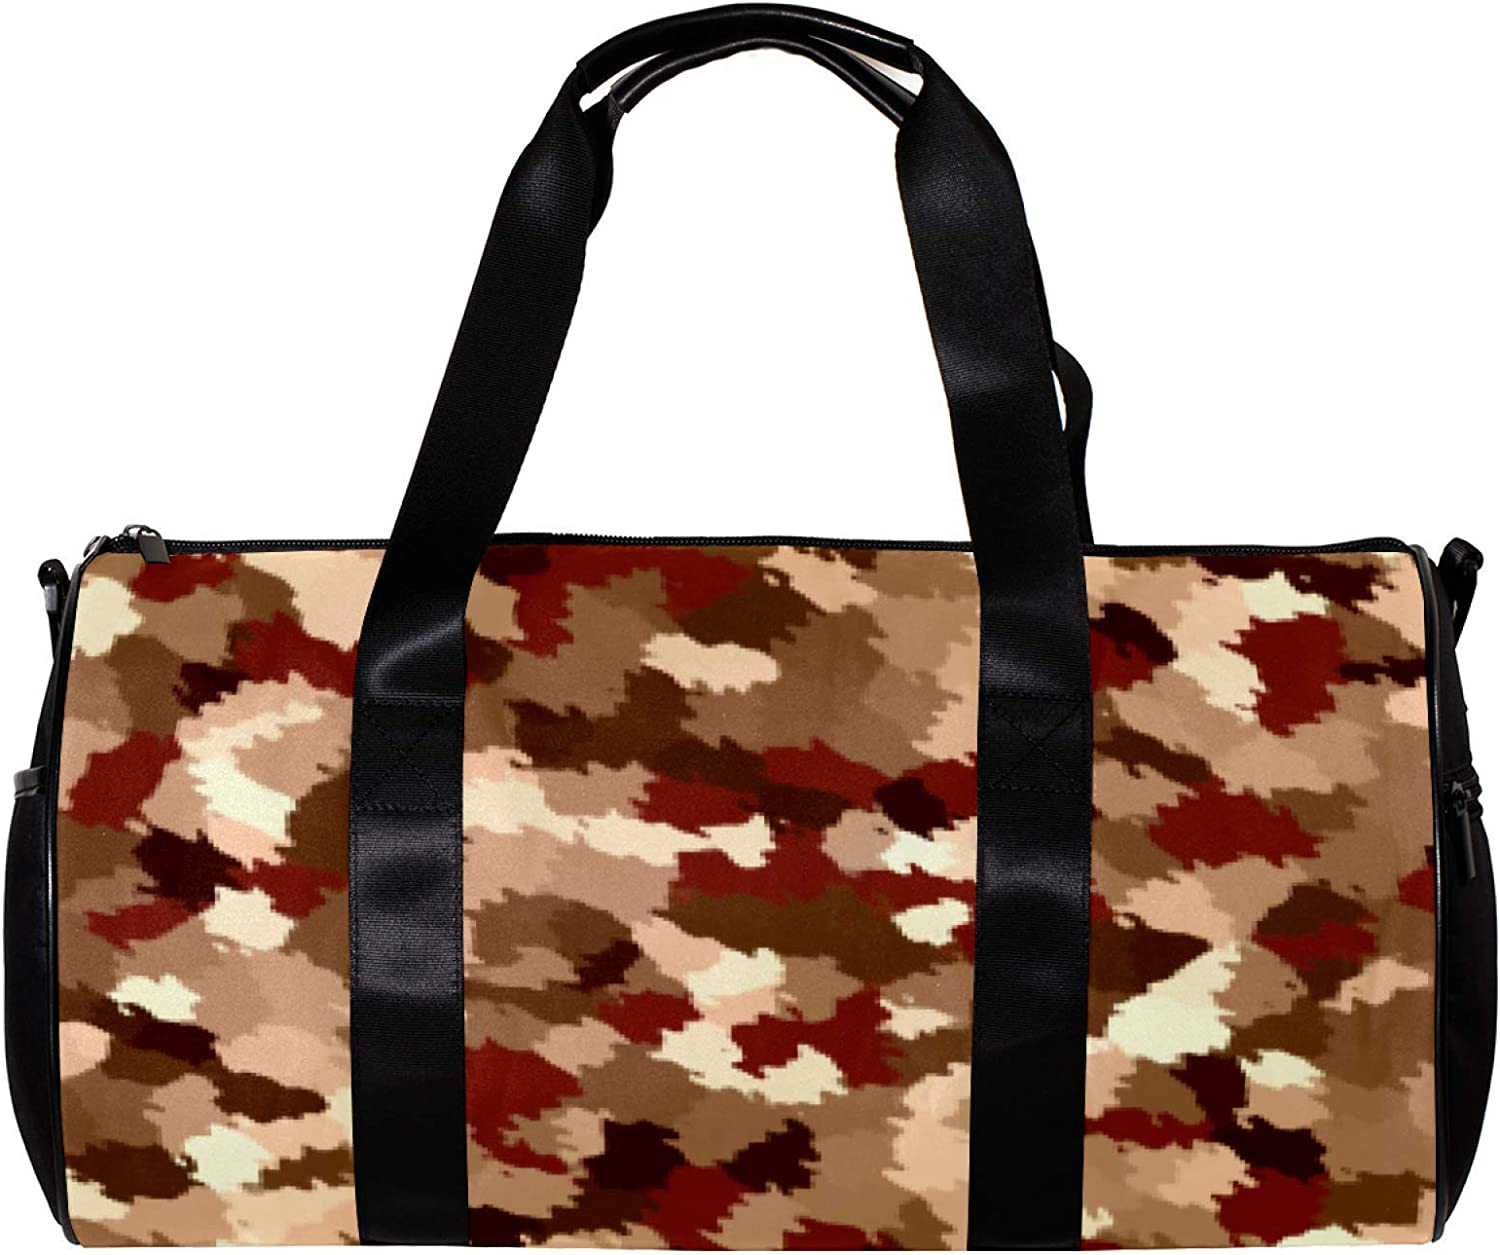 LEVEIS Autumn Maple Shredded Paper Duffel Manufacturer OFFicial shop Tote Travel Sports Tampa Mall Bag